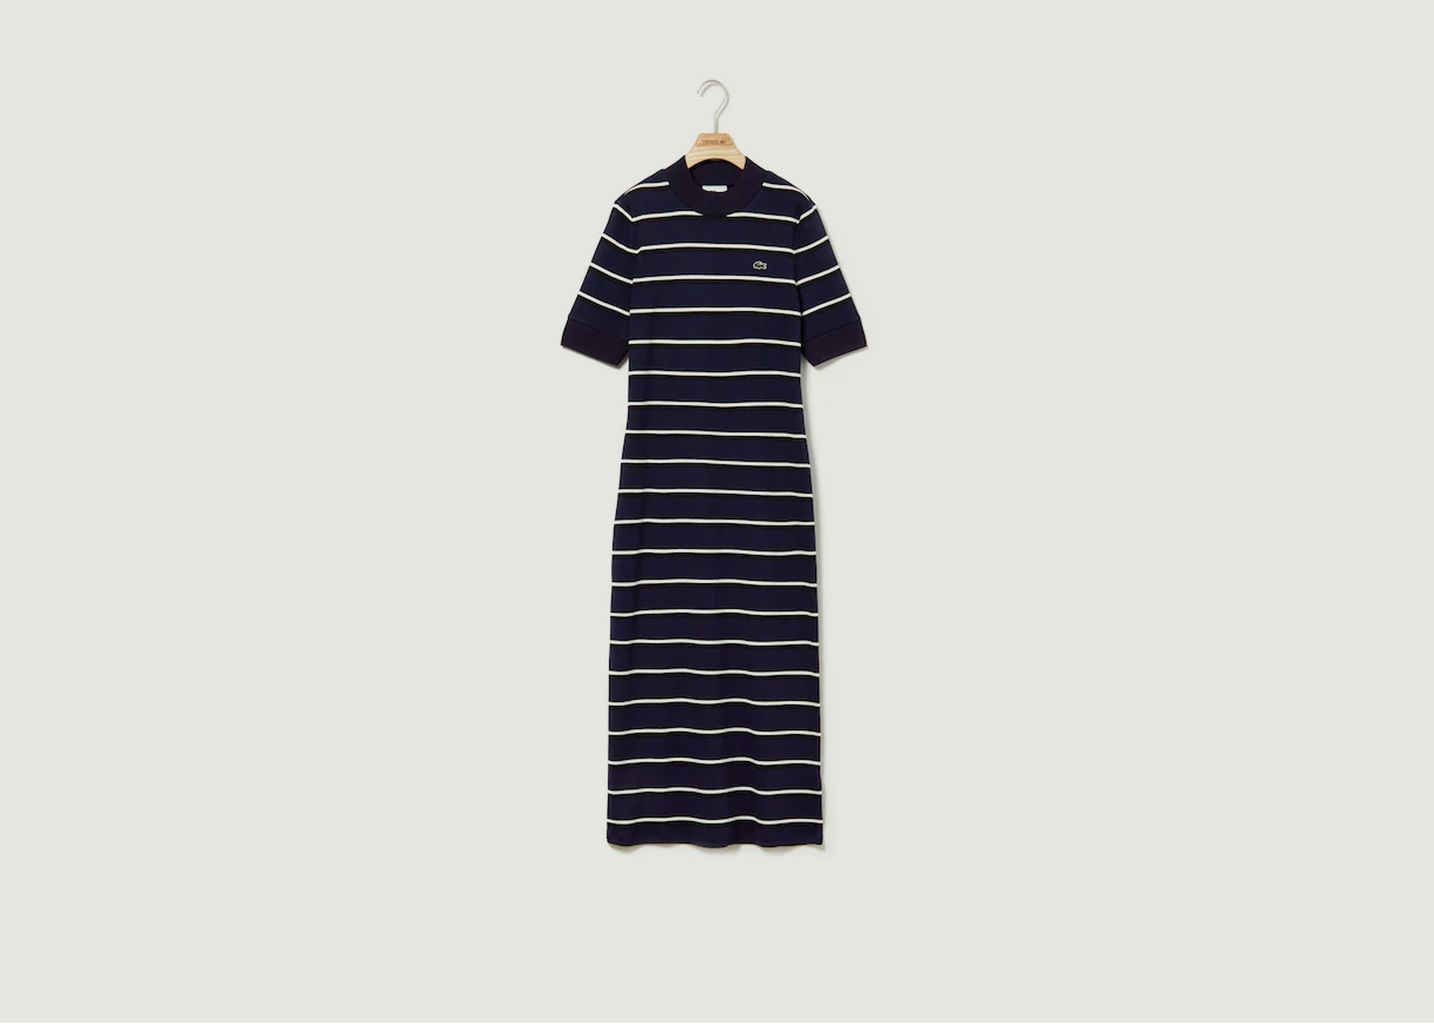 Robe Tube Rayée Manches Courtes - Lacoste Live